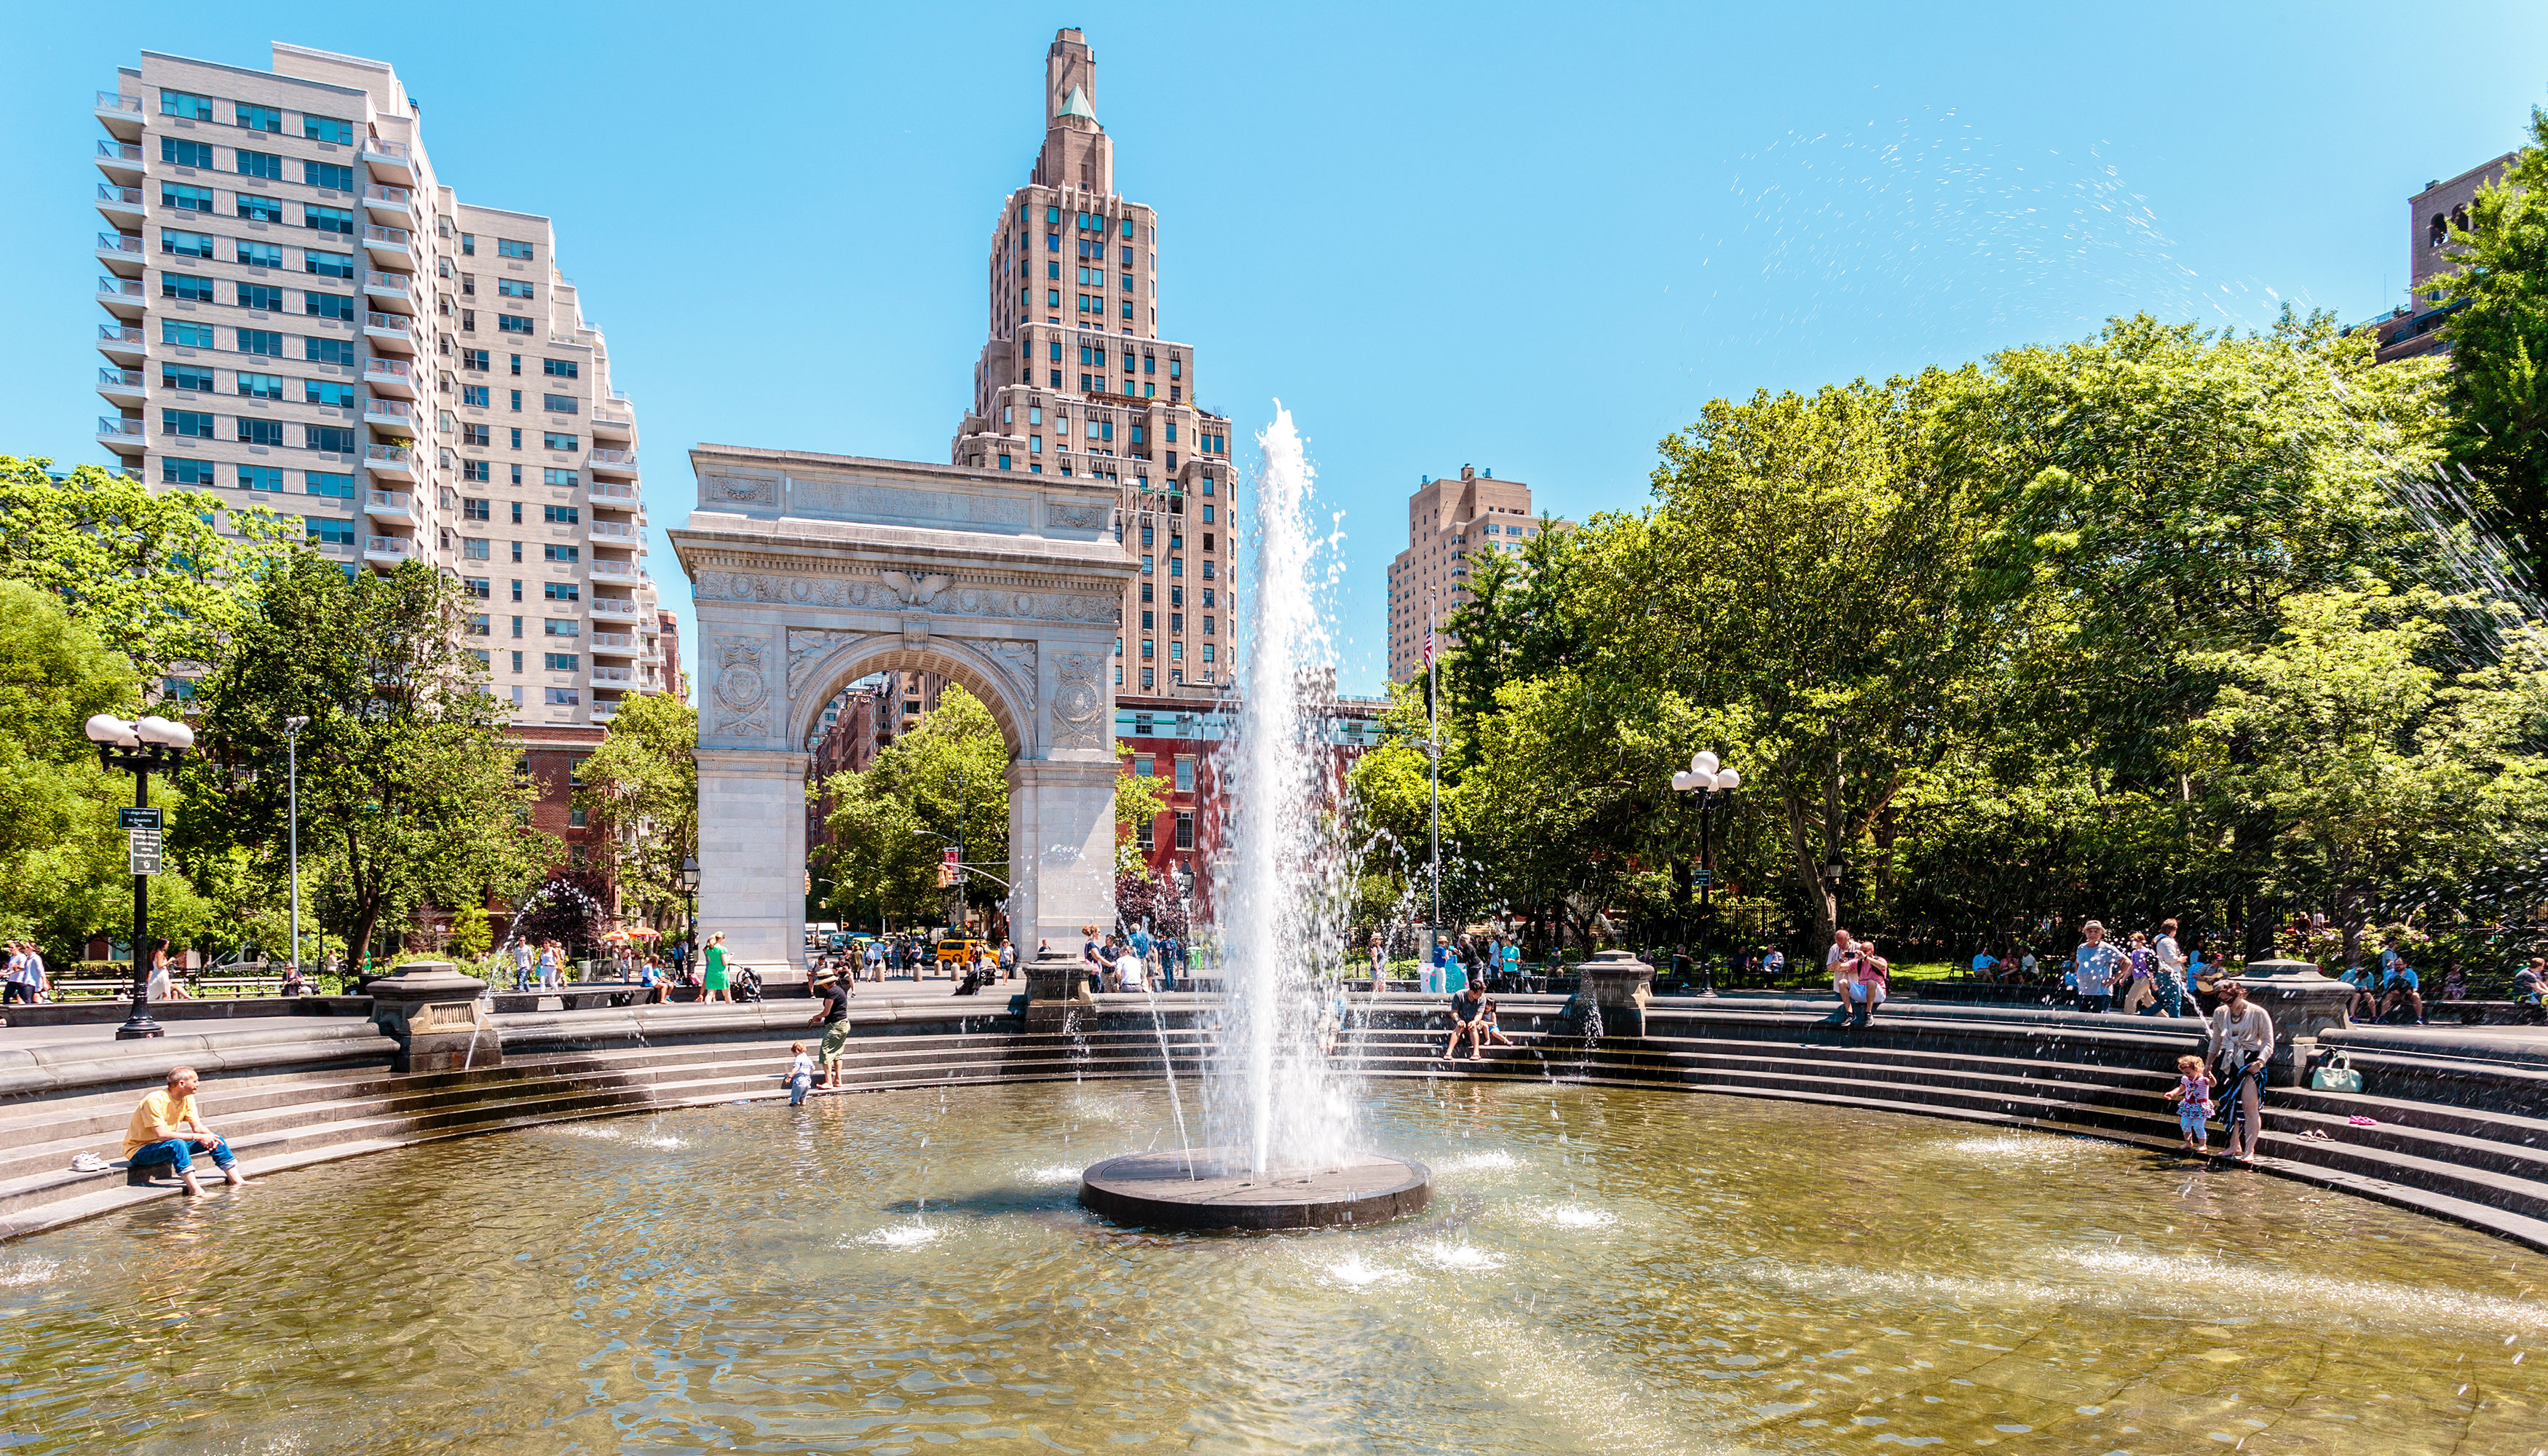 The Washington Square Park fountain is in the foreground. There are people sitting on the edge of the fountain. The Washington Square arch and city buildings are in the background.